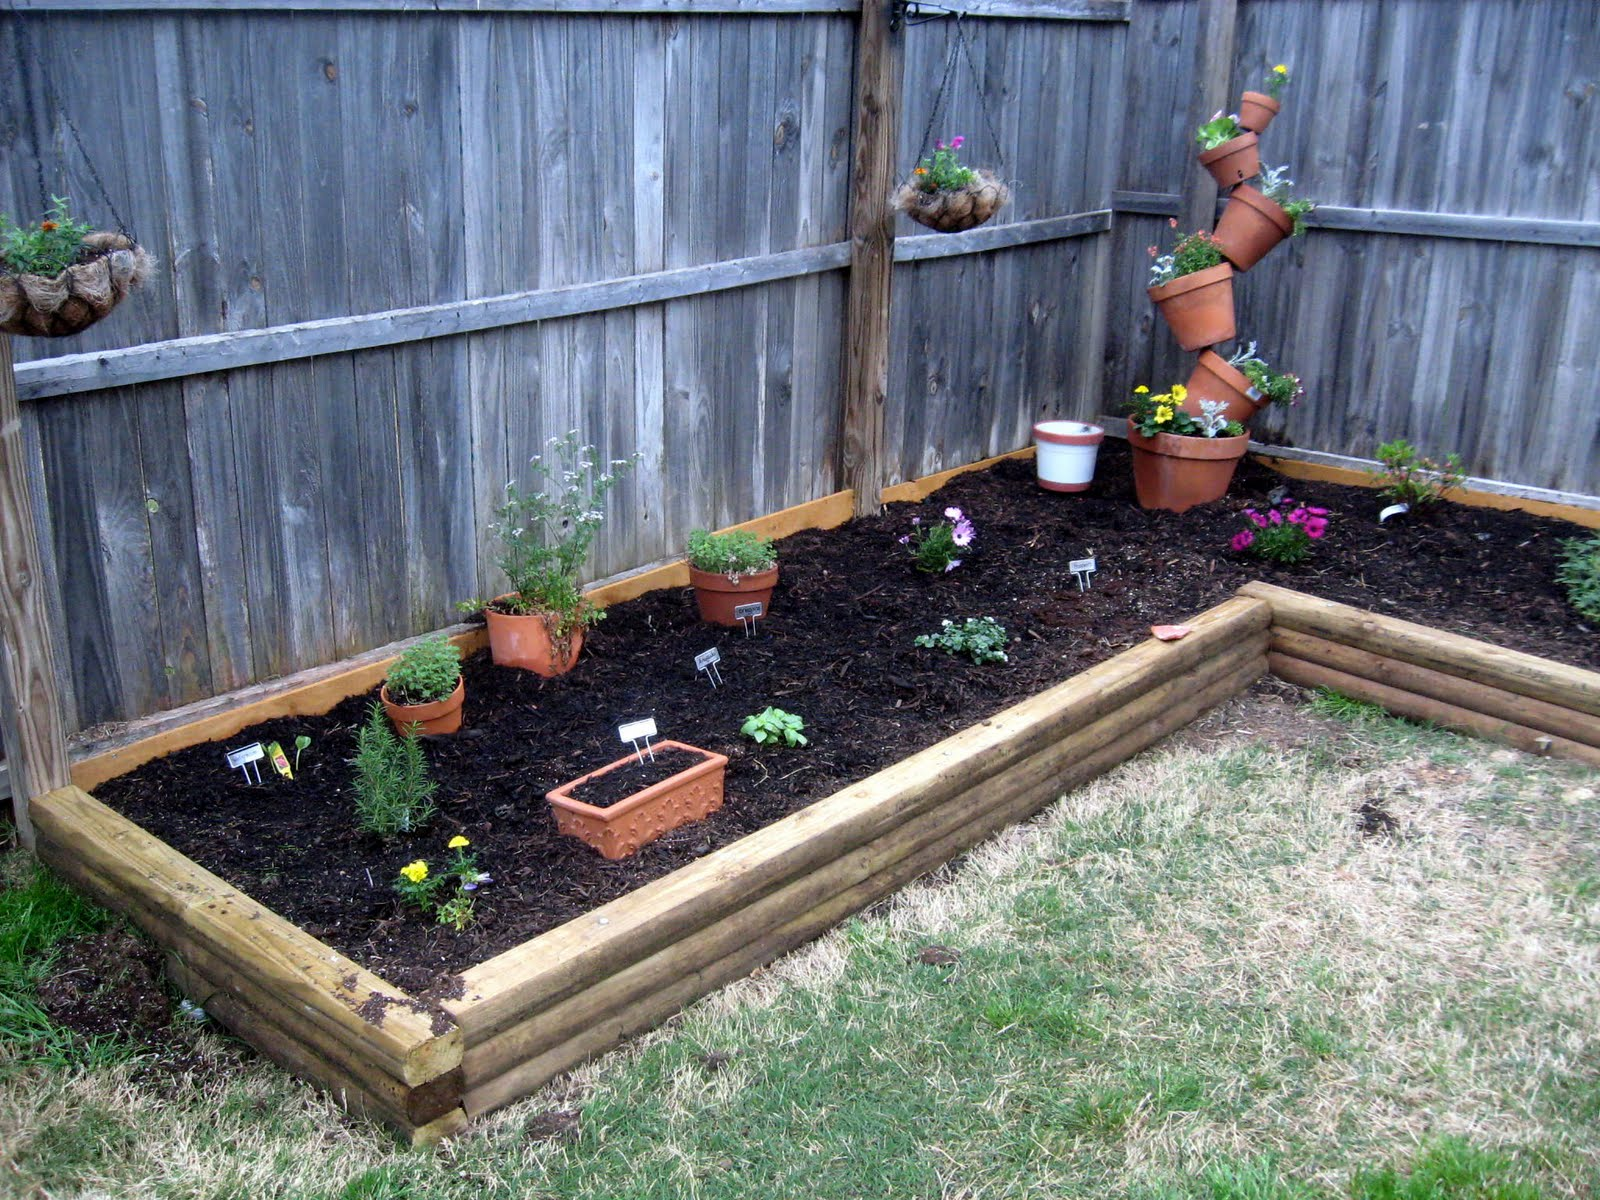 Next to heaven diy compost bin for Small yard decorating ideas